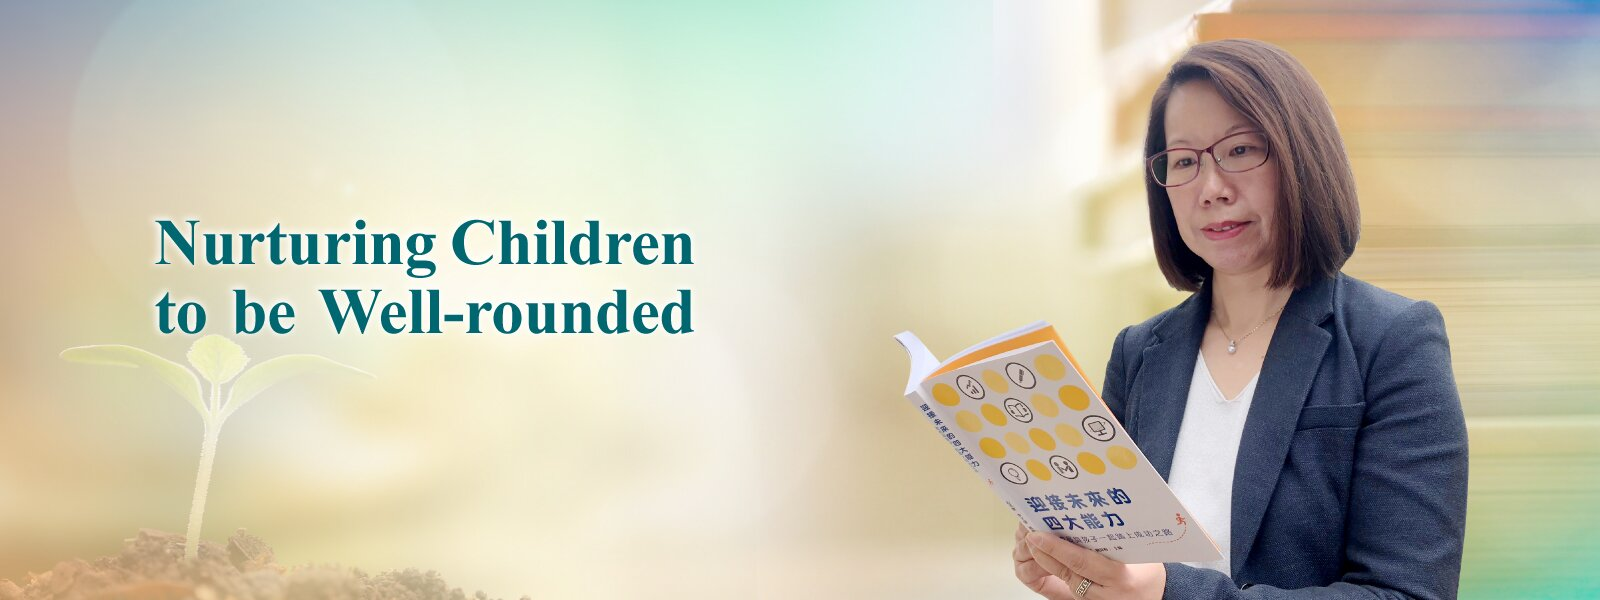 Nurturing Children to be Well-rounded